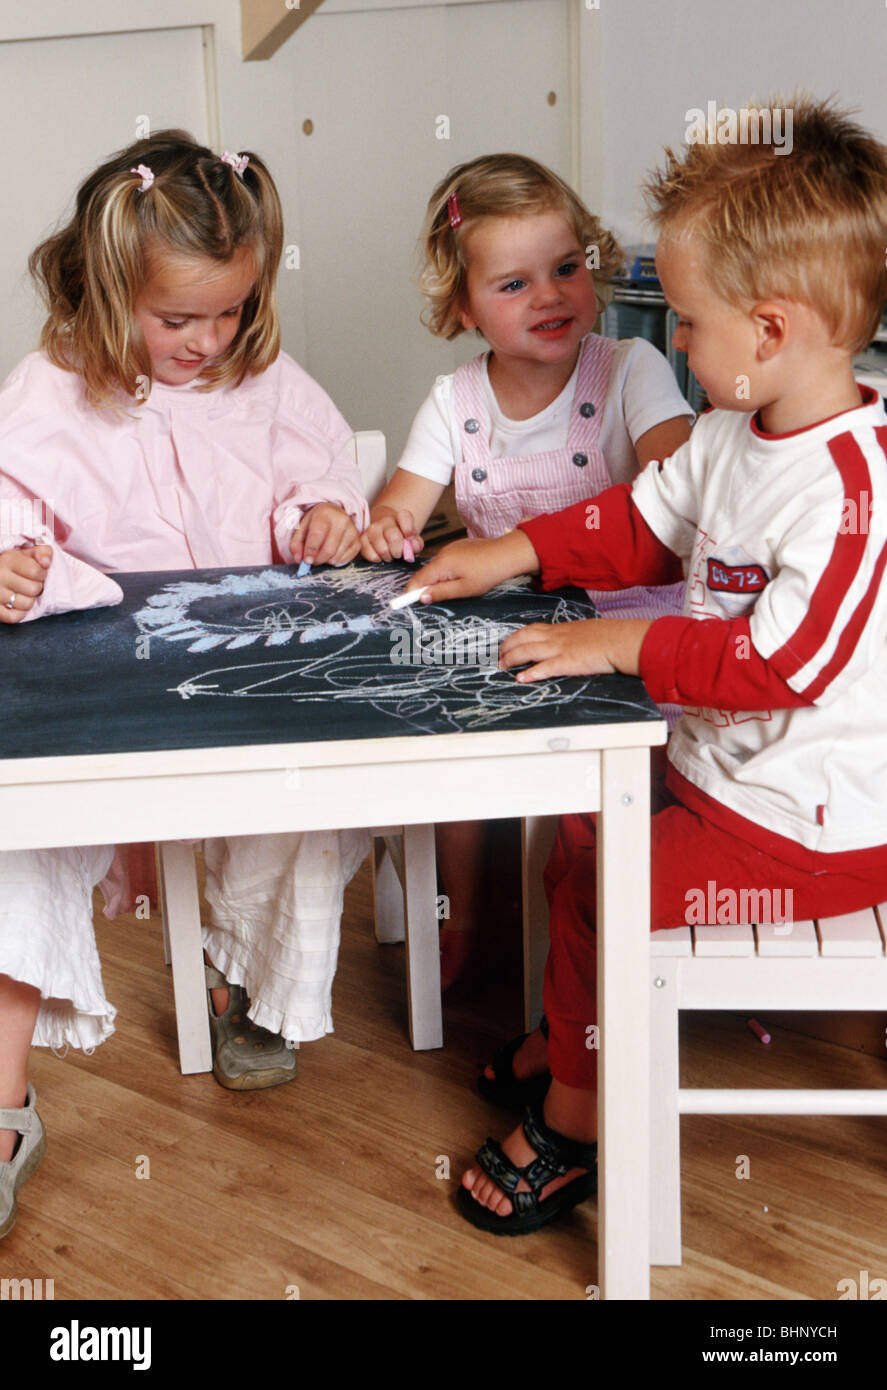 Children sharing blackboard and  chalk at school  due to groupswork - Stock Image